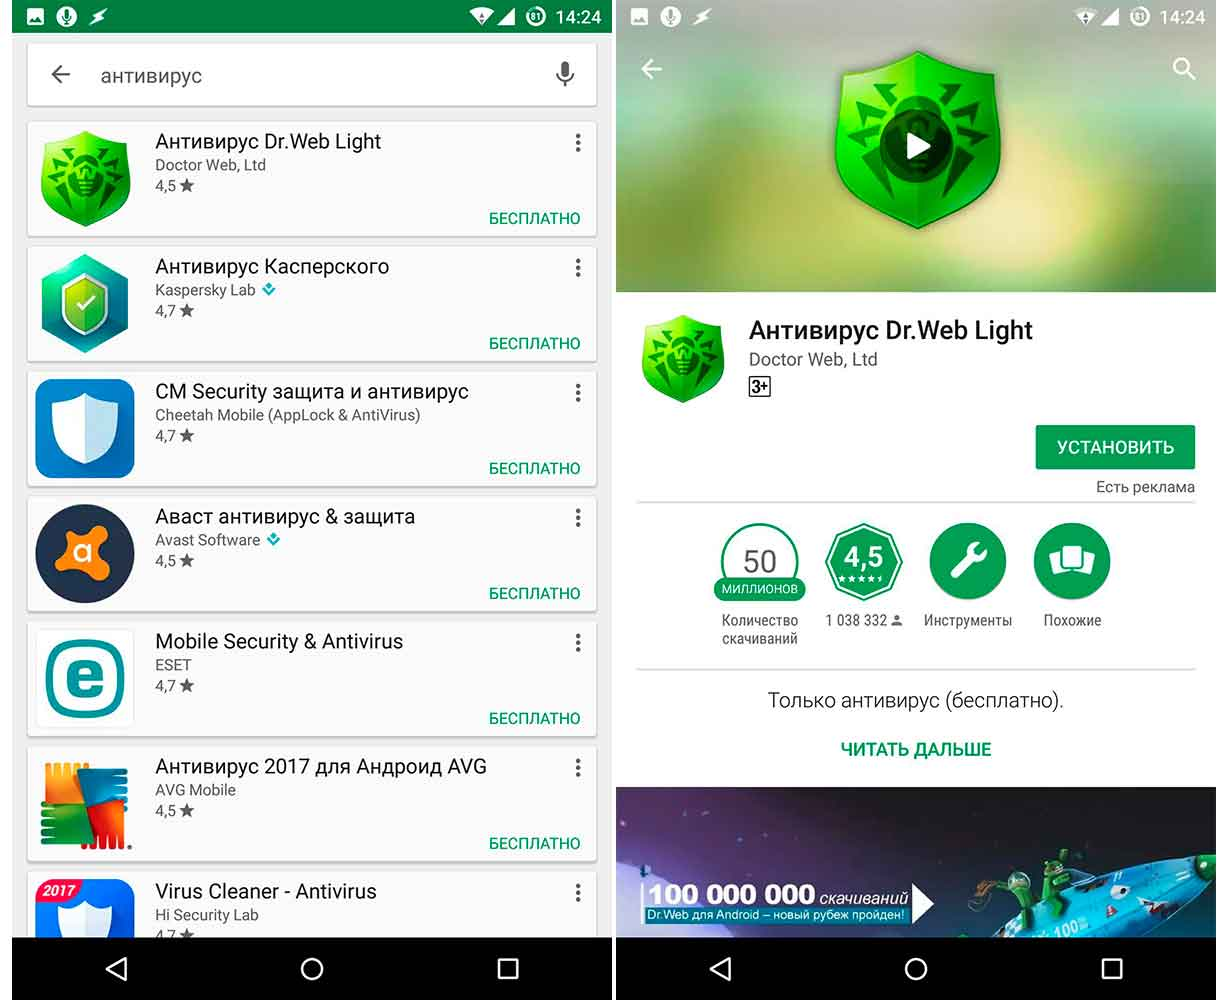 What standard applications can be removed from the android